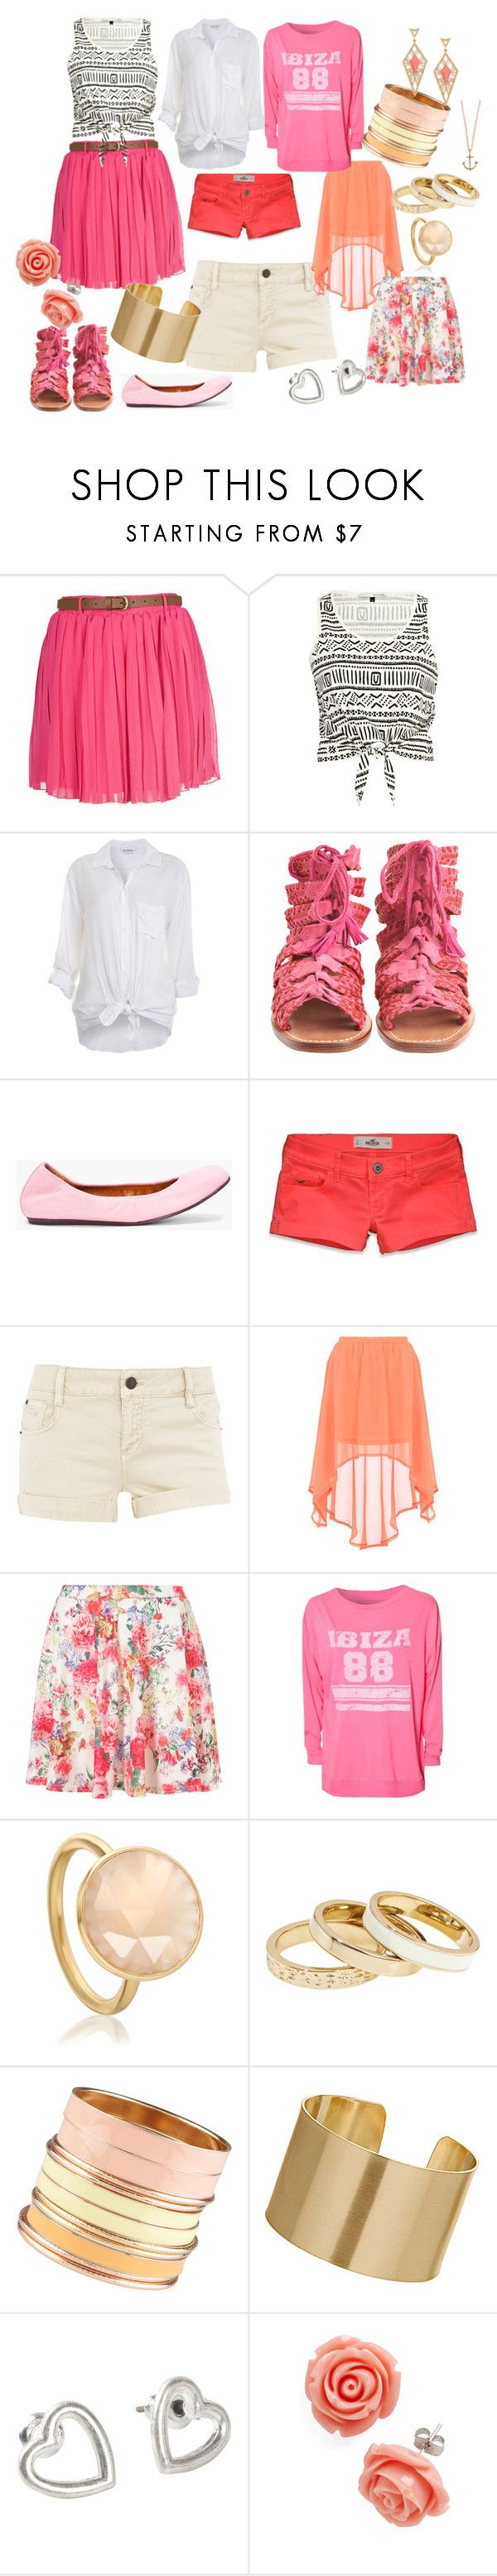 """""""Whitney"""" by corsola ❤ liked on Polyvore featuring River Island, Miss Selfridge, Antik Batik, Lanvin, Hollister Co., Dorothy Perkins, Paul's Boutique, Astley Clarke, Reiss and ALDO"""